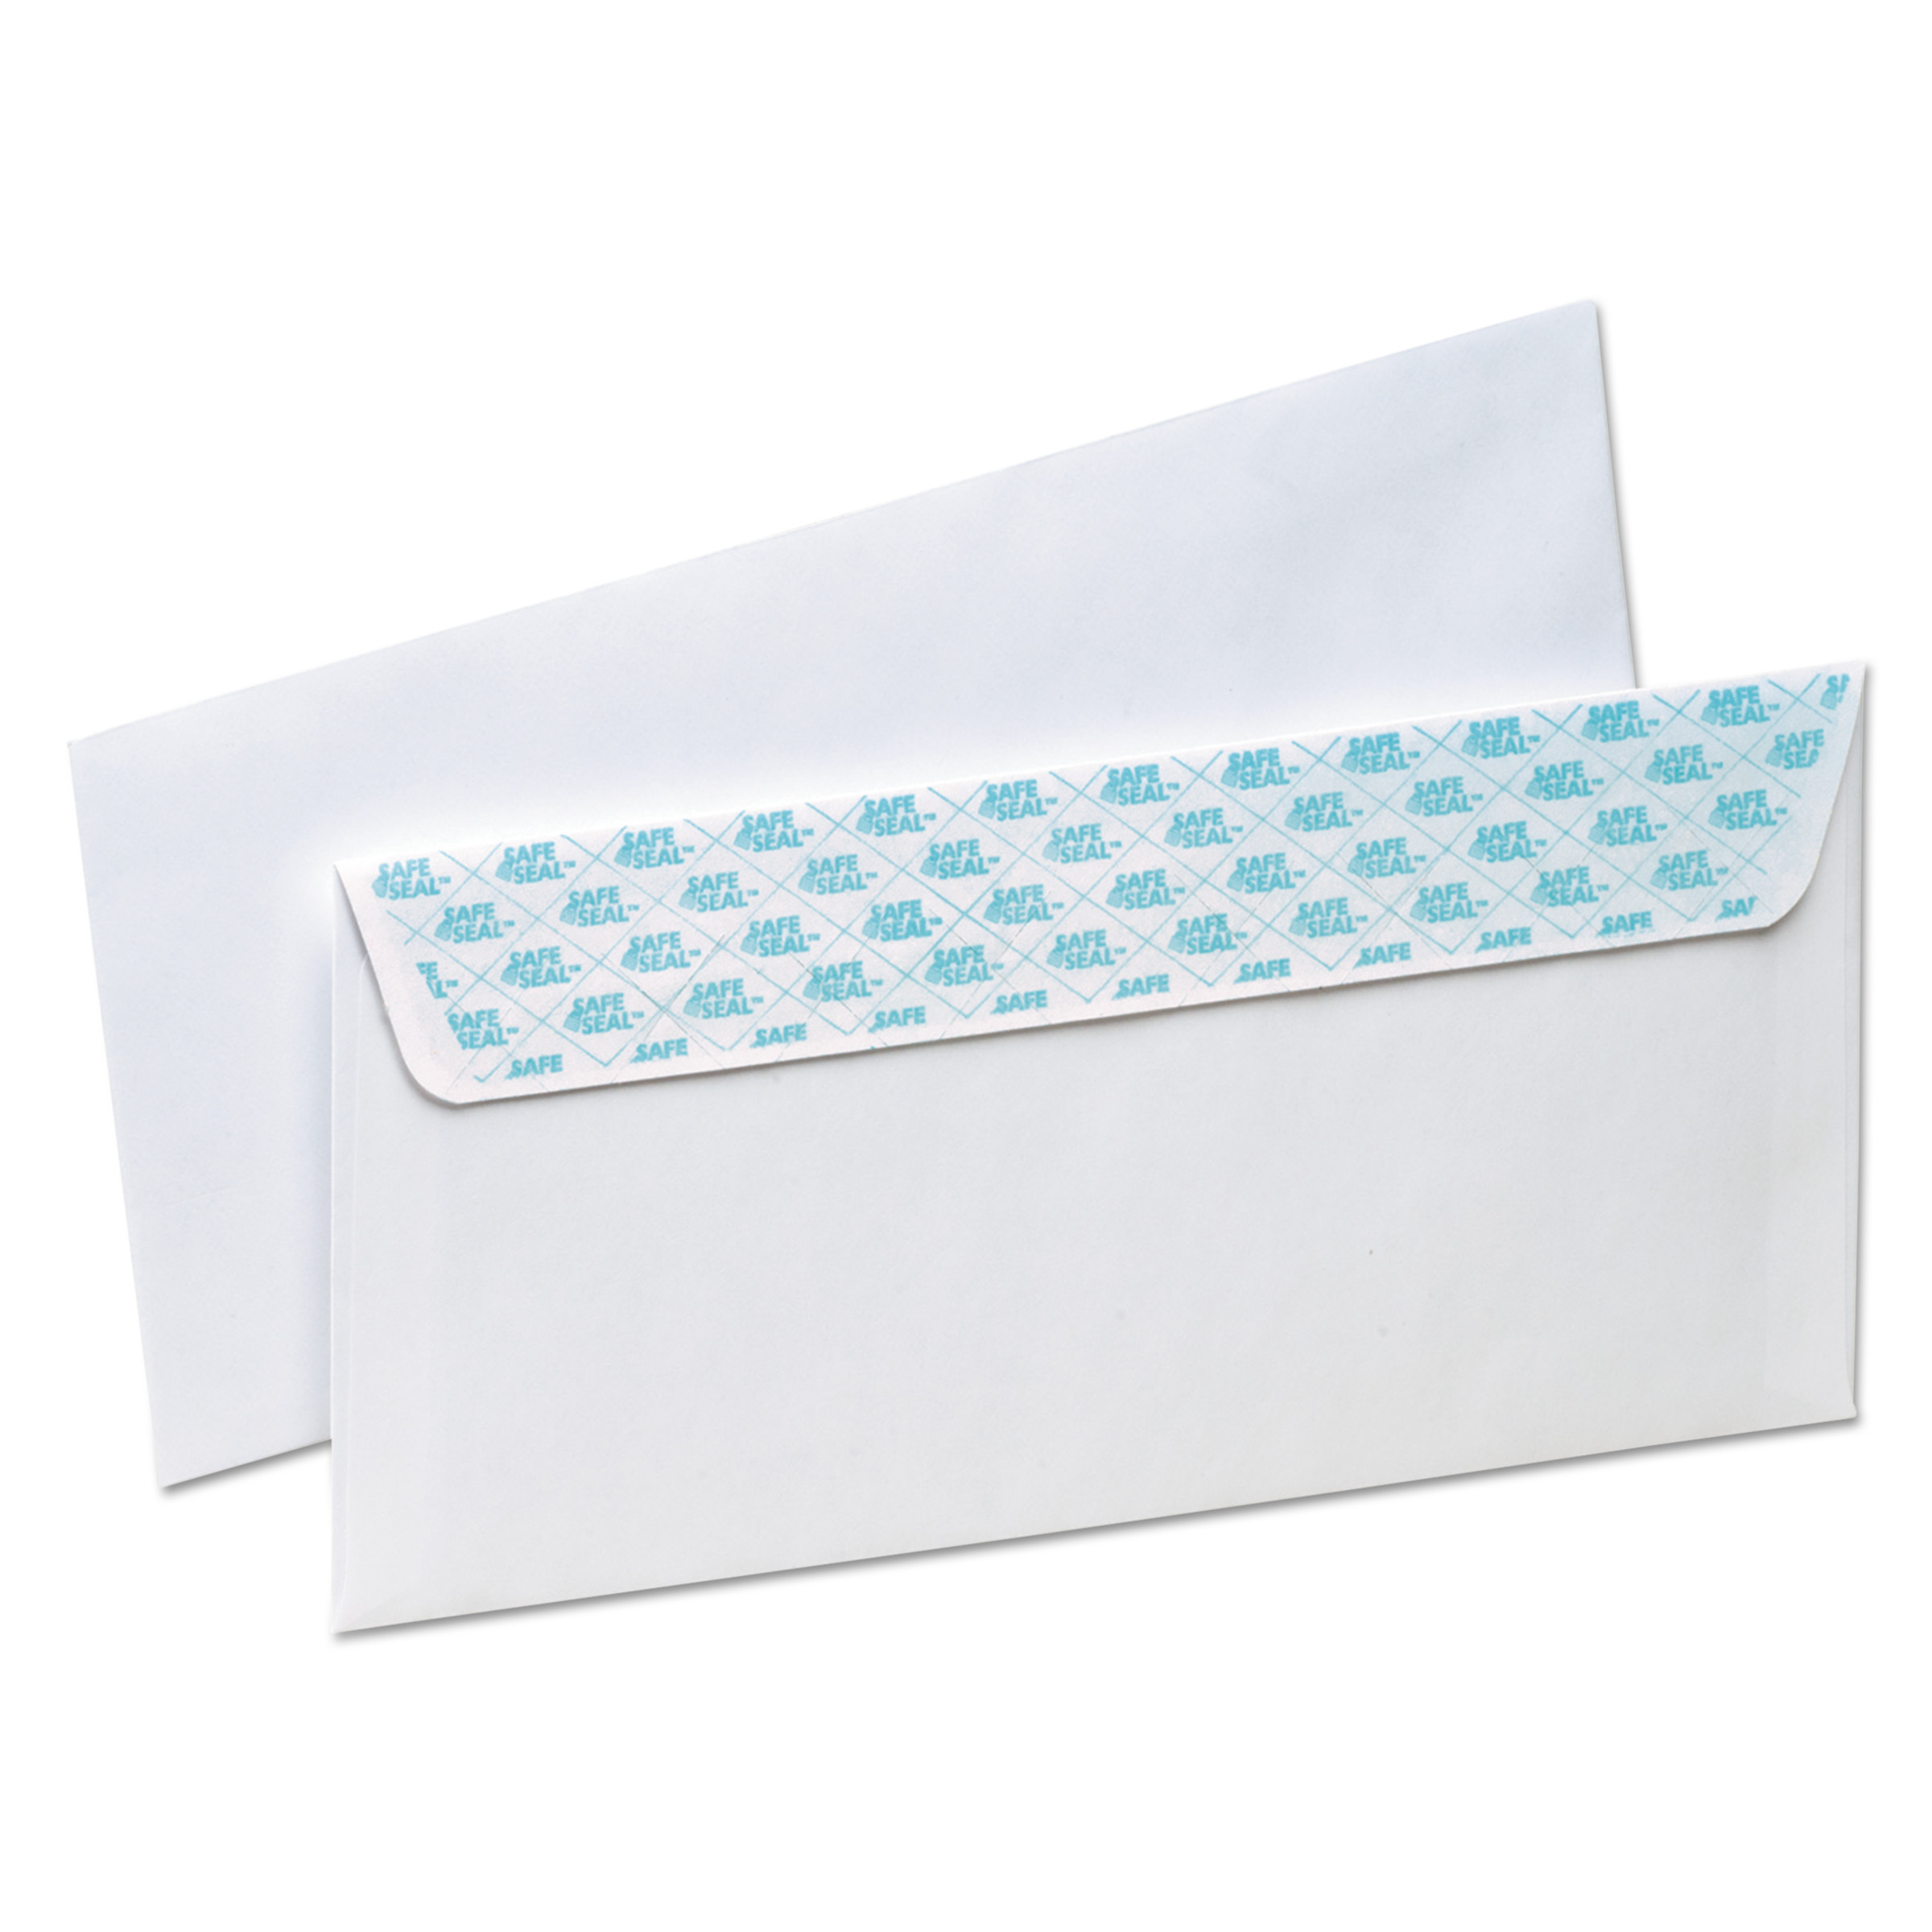 Ampad Gold Fibre SafeSeal Release & Seal Envelope, #10, 4 1/8 x 9 1/2, White, 100/Box